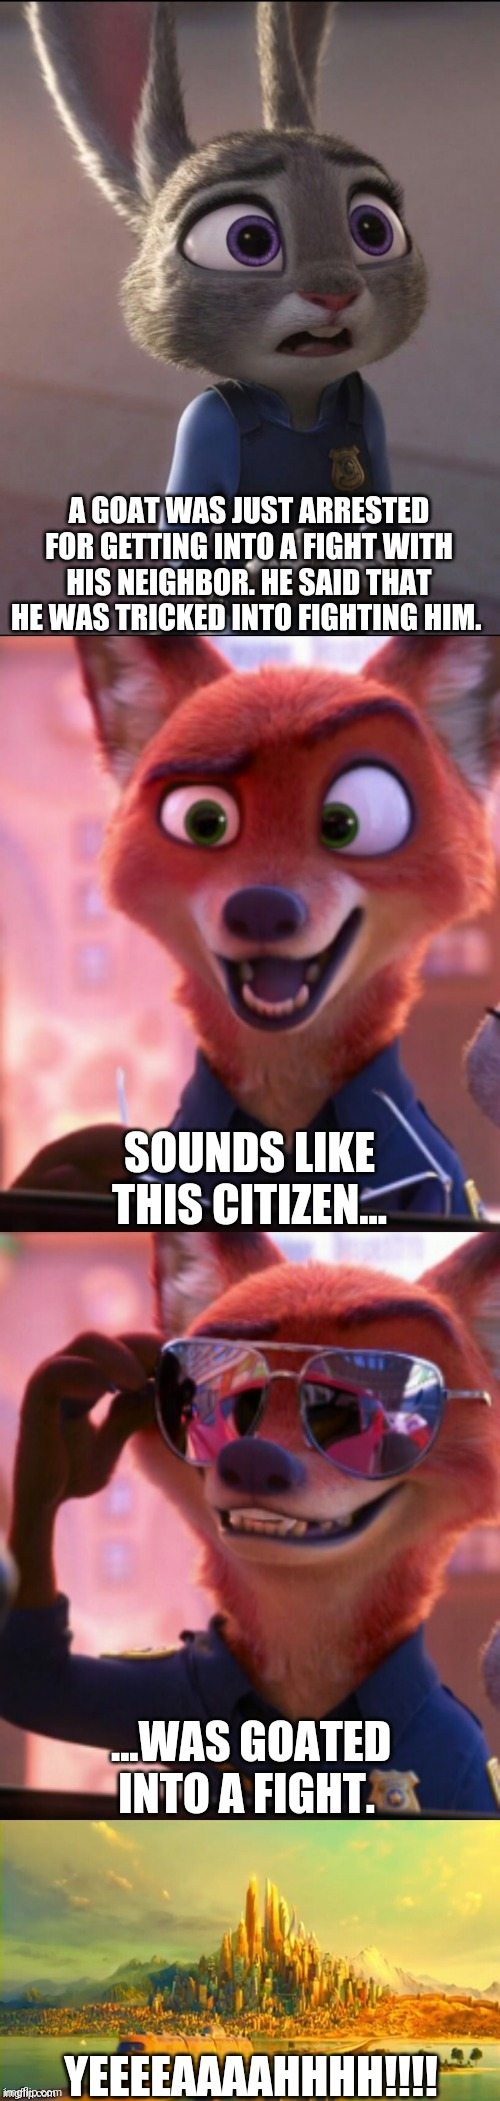 CSI: Zootopia 28 |  A GOAT WAS JUST ARRESTED FOR GETTING INTO A FIGHT WITH HIS NEIGHBOR. HE SAID THAT HE WAS TRICKED INTO FIGHTING HIM. SOUNDS LIKE THIS CITIZEN... ...WAS GOATED INTO A FIGHT. YEEEEAAAAHHHH!!!! | image tagged in csi zootopia,zootopia,judy hopps,nick wilde,parody,funny | made w/ Imgflip meme maker